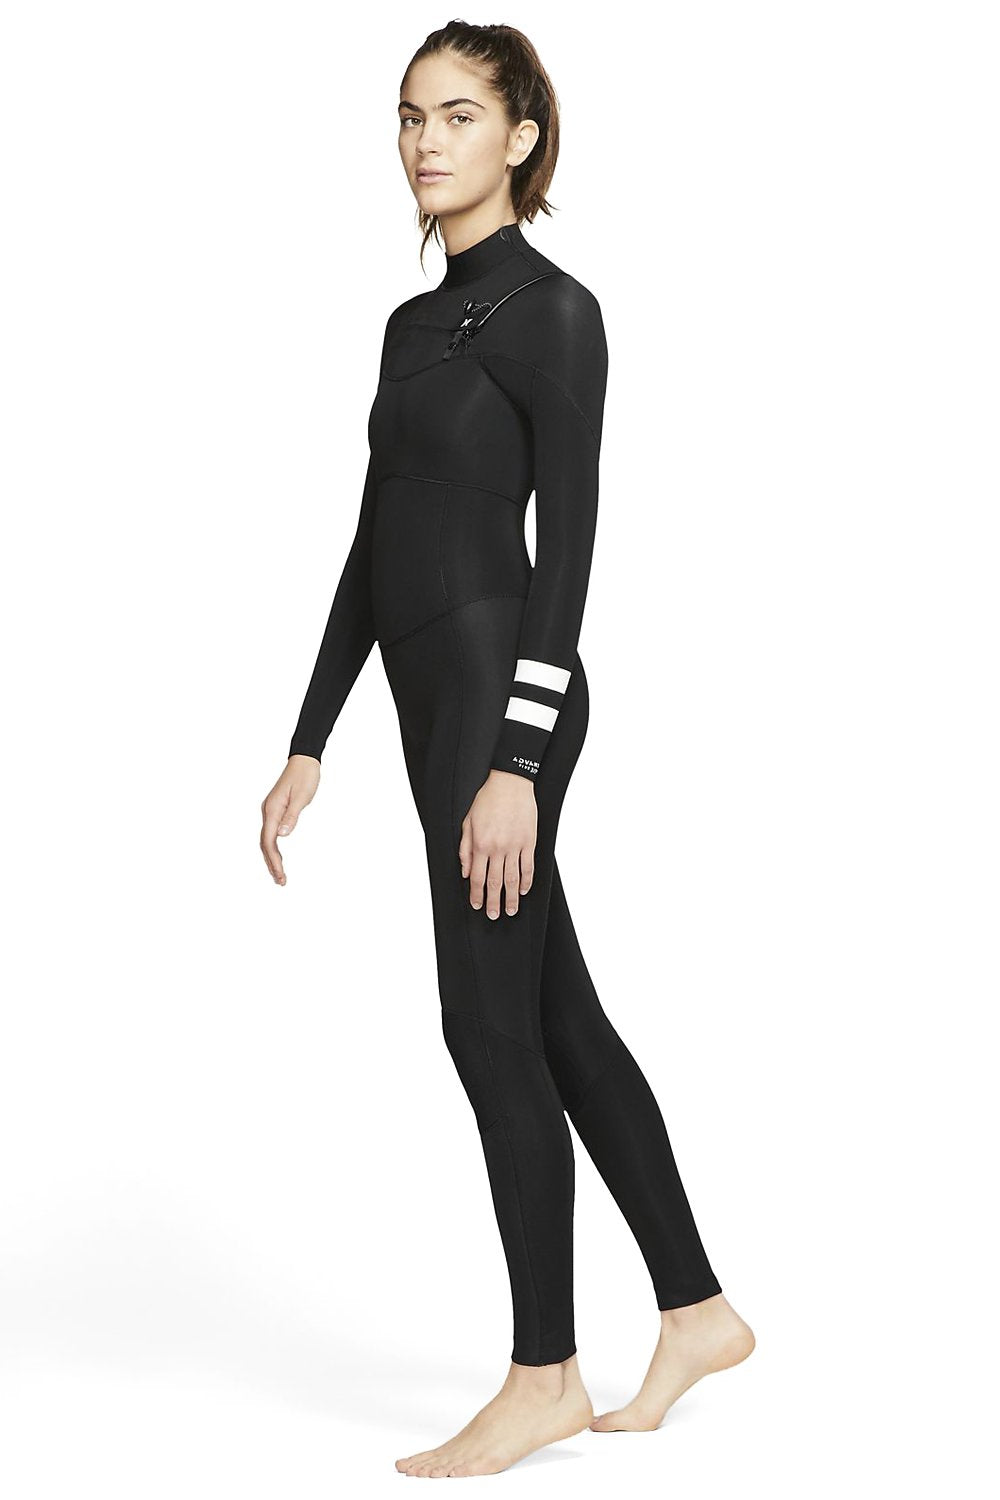 Hurley Womens Advantage Plus 3/2 Full Suit